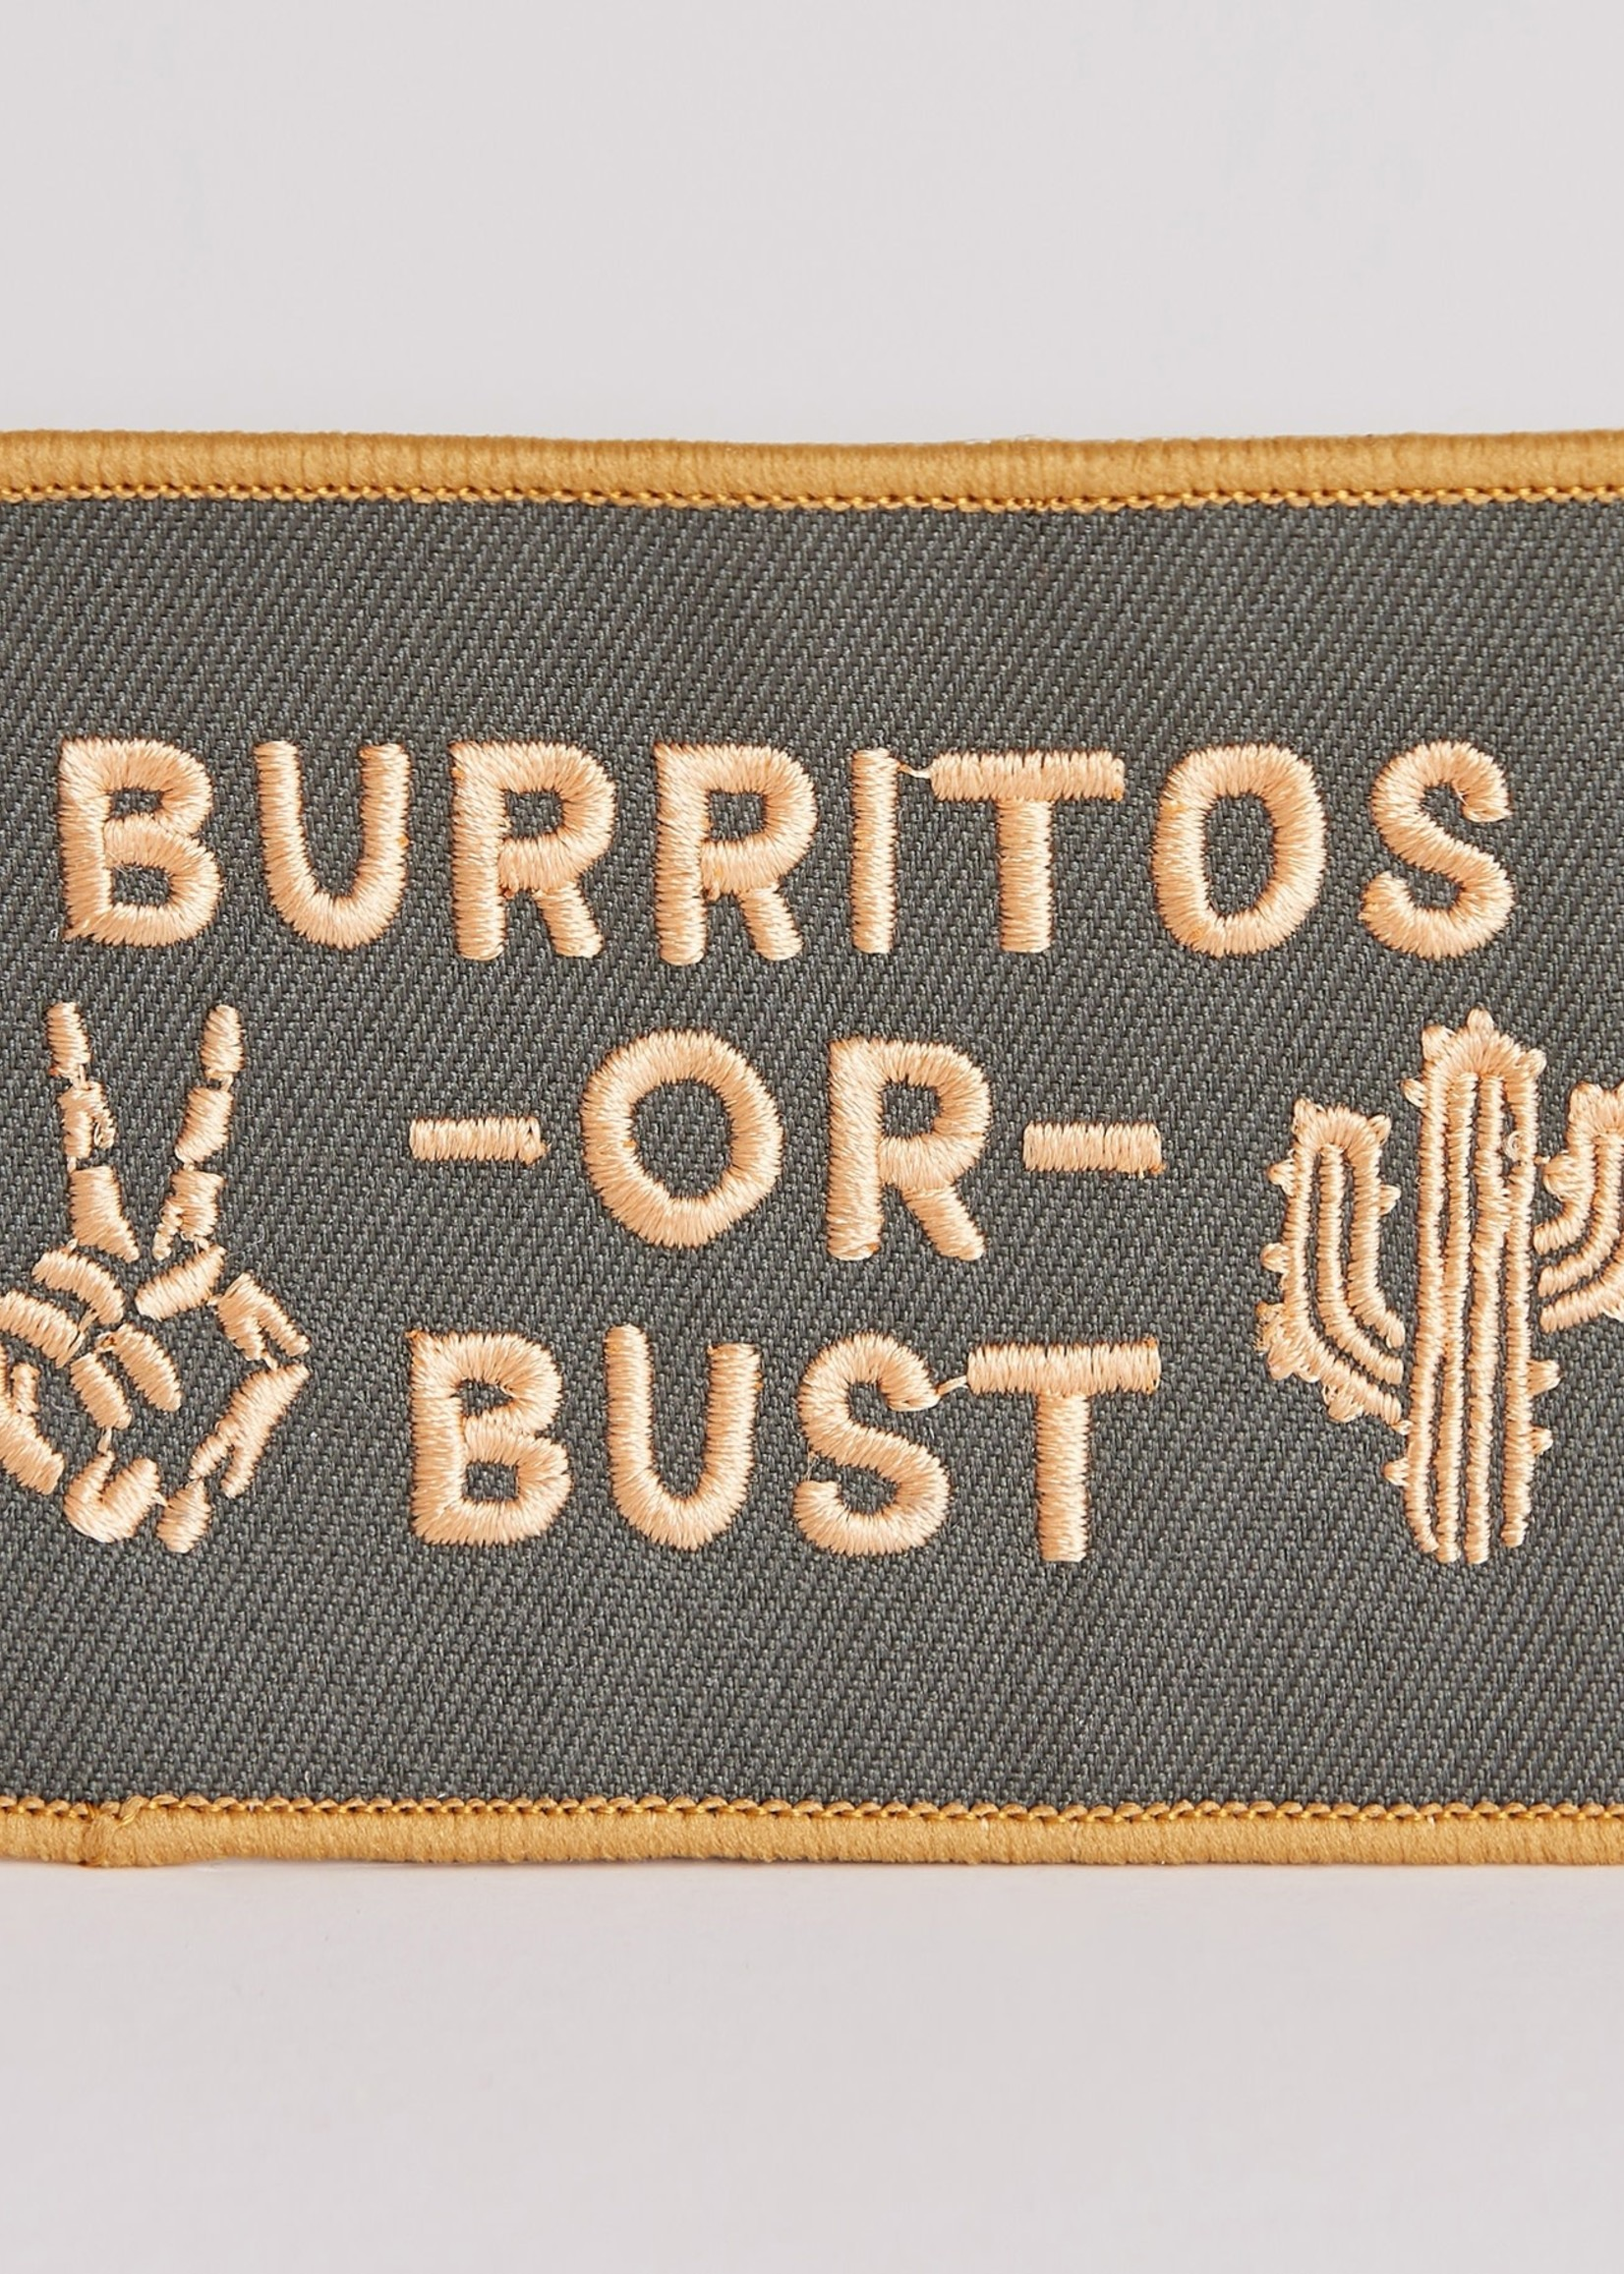 PYKNIC PYKNIC BURRITOS OR BUST PATCH